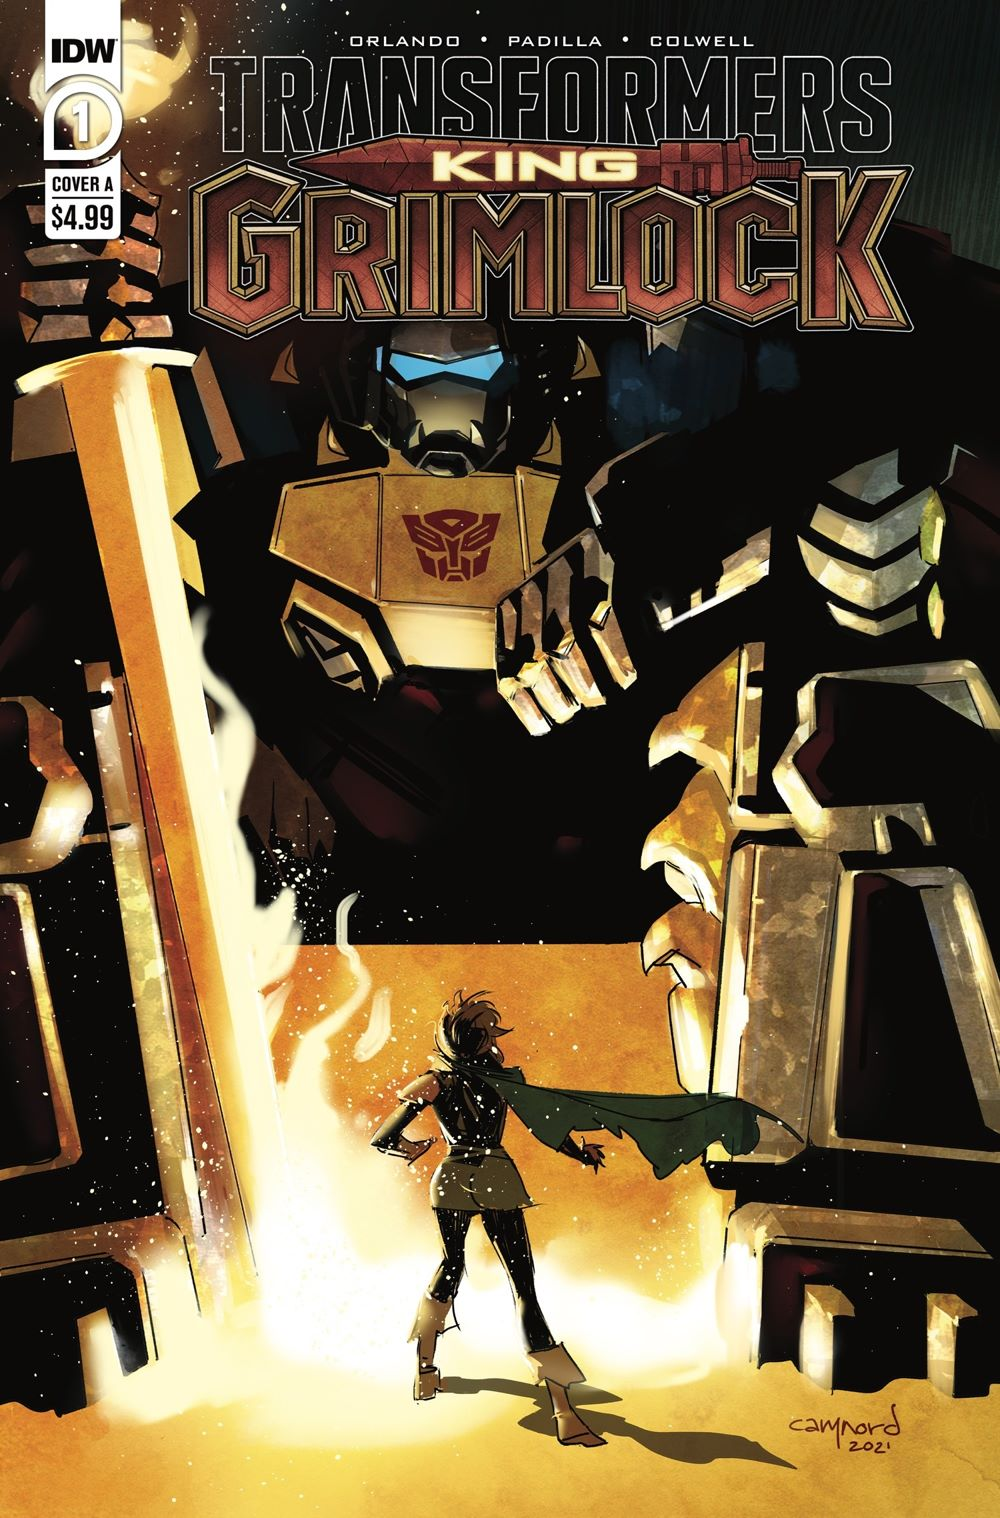 Transformers-King-Grimlock-1-Cover-A-by-Cary-Nord IDW Publishing August 2021 Solicitations